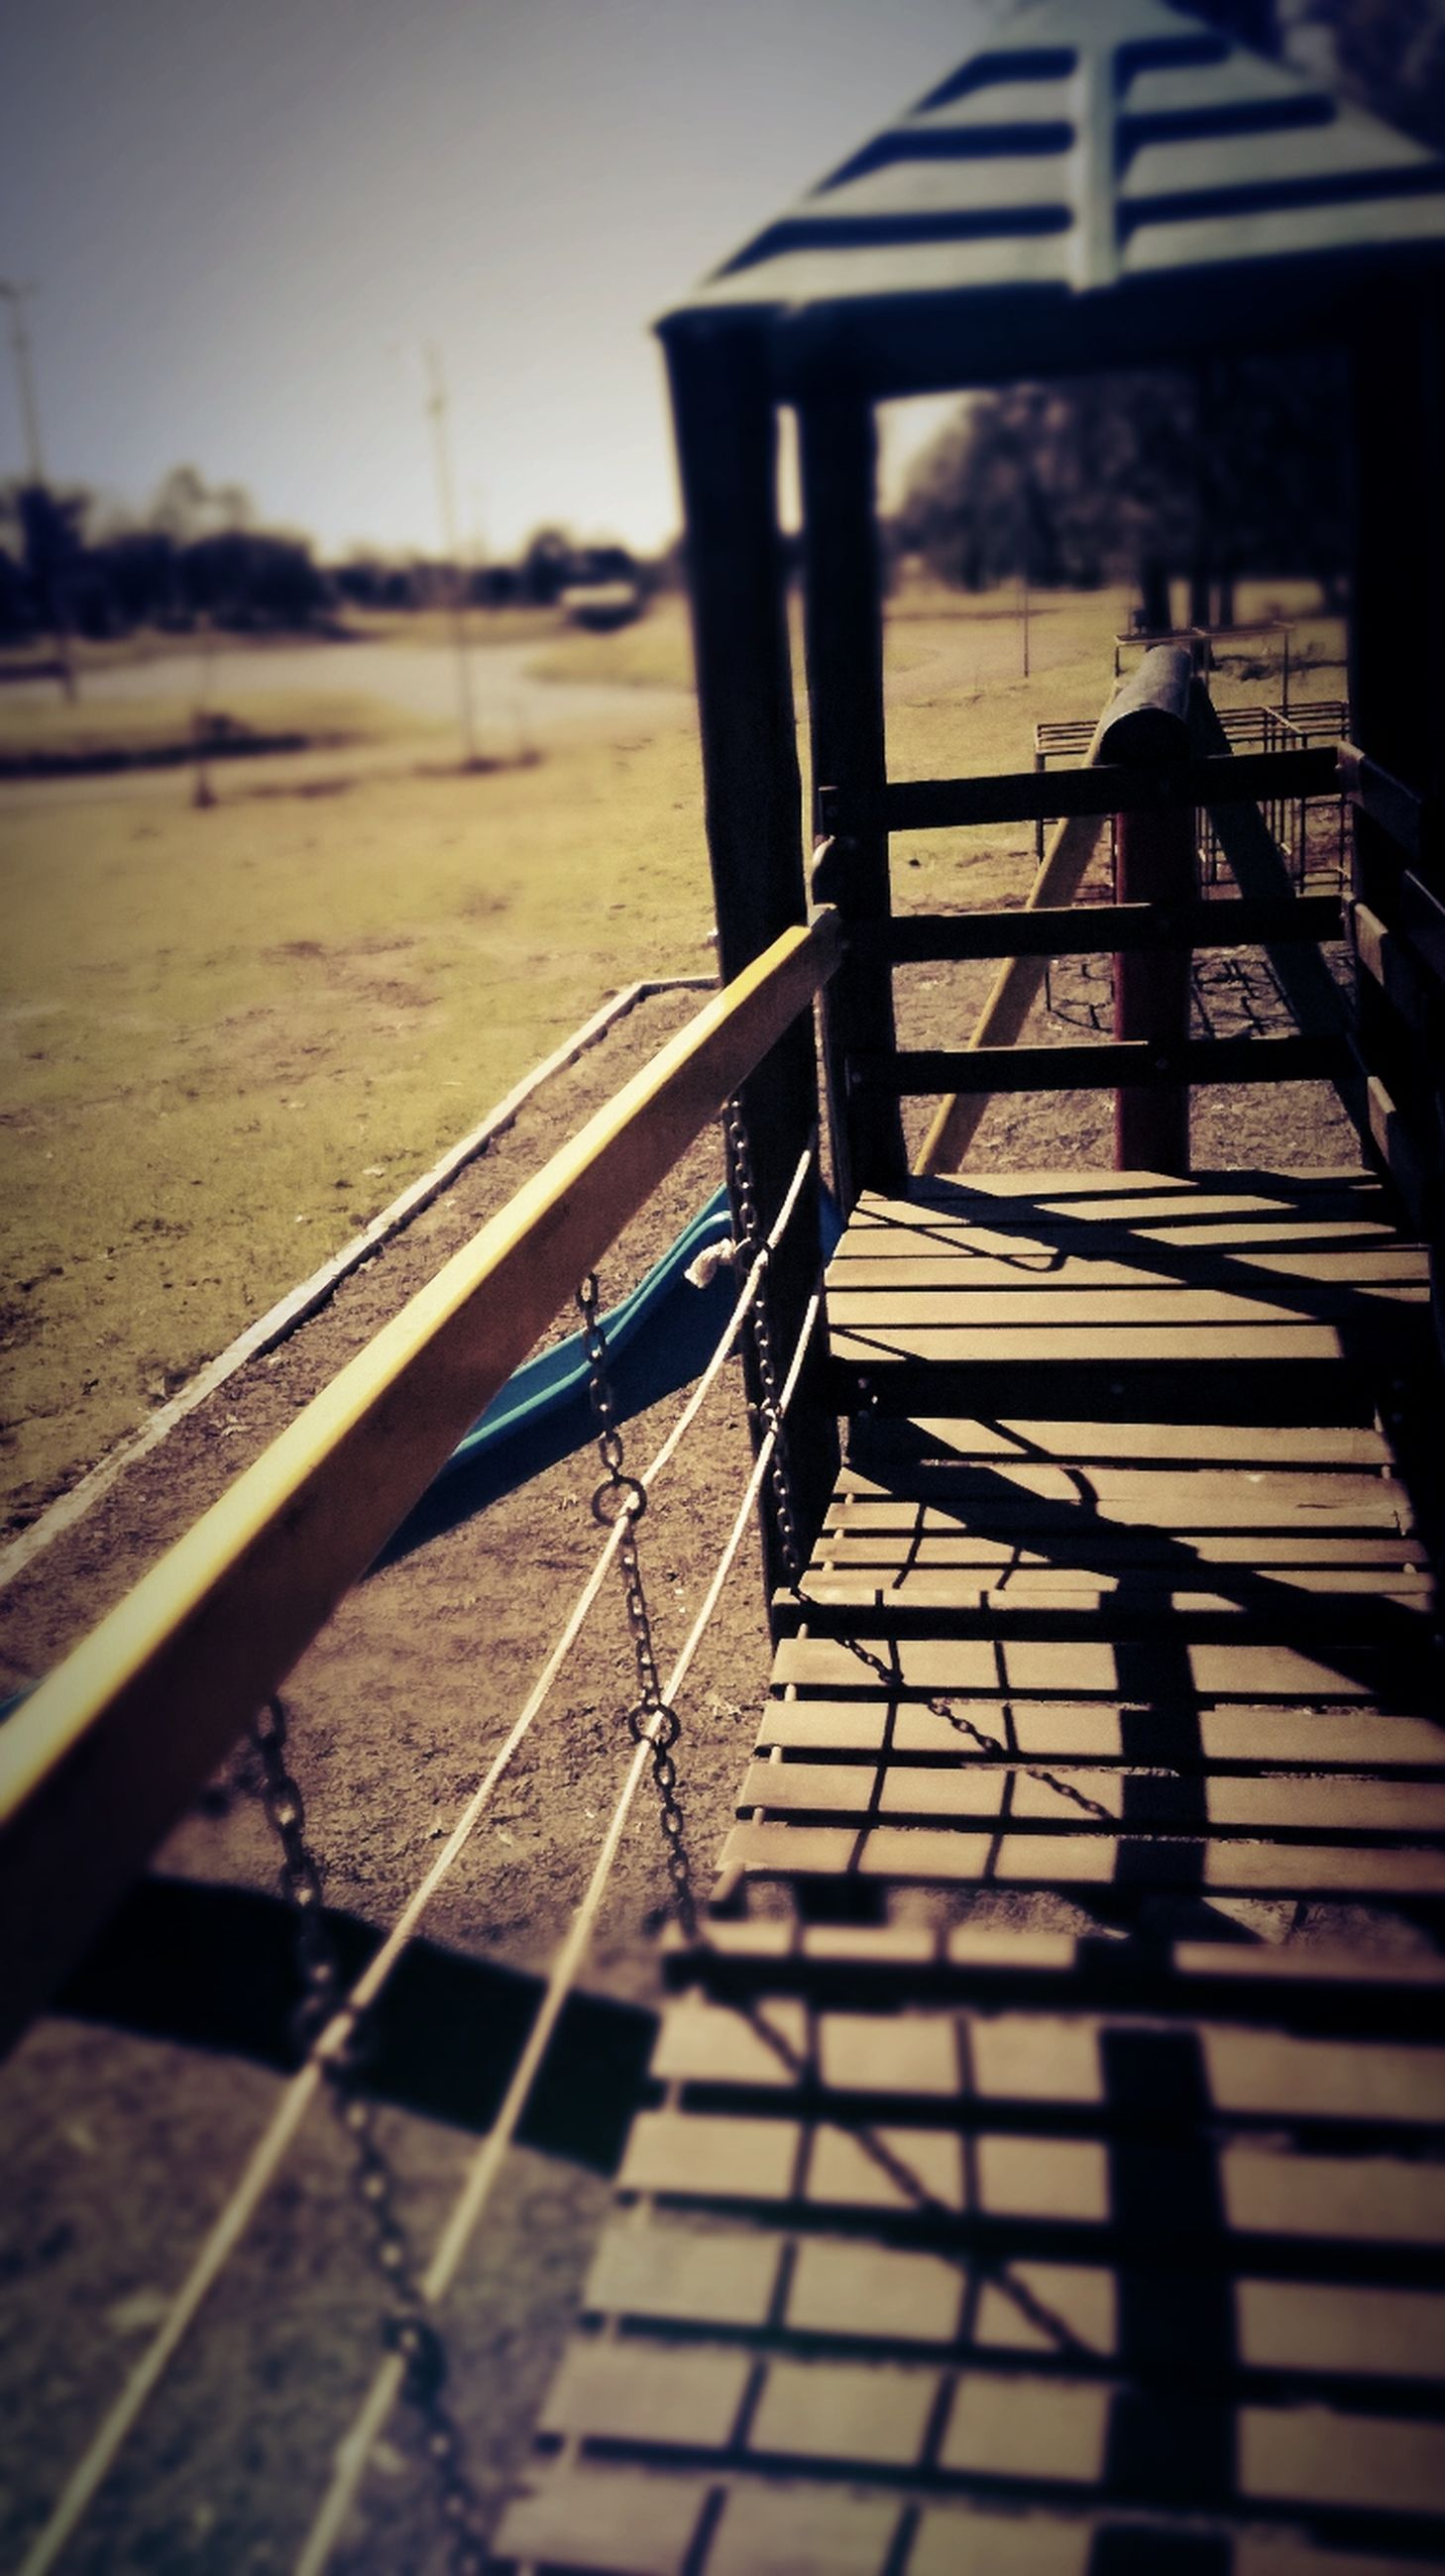 railing, the way forward, empty, sunlight, selective focus, shadow, wood - material, metal, surface level, absence, water, sky, no people, outdoors, transportation, steps, focus on foreground, tranquility, bench, day